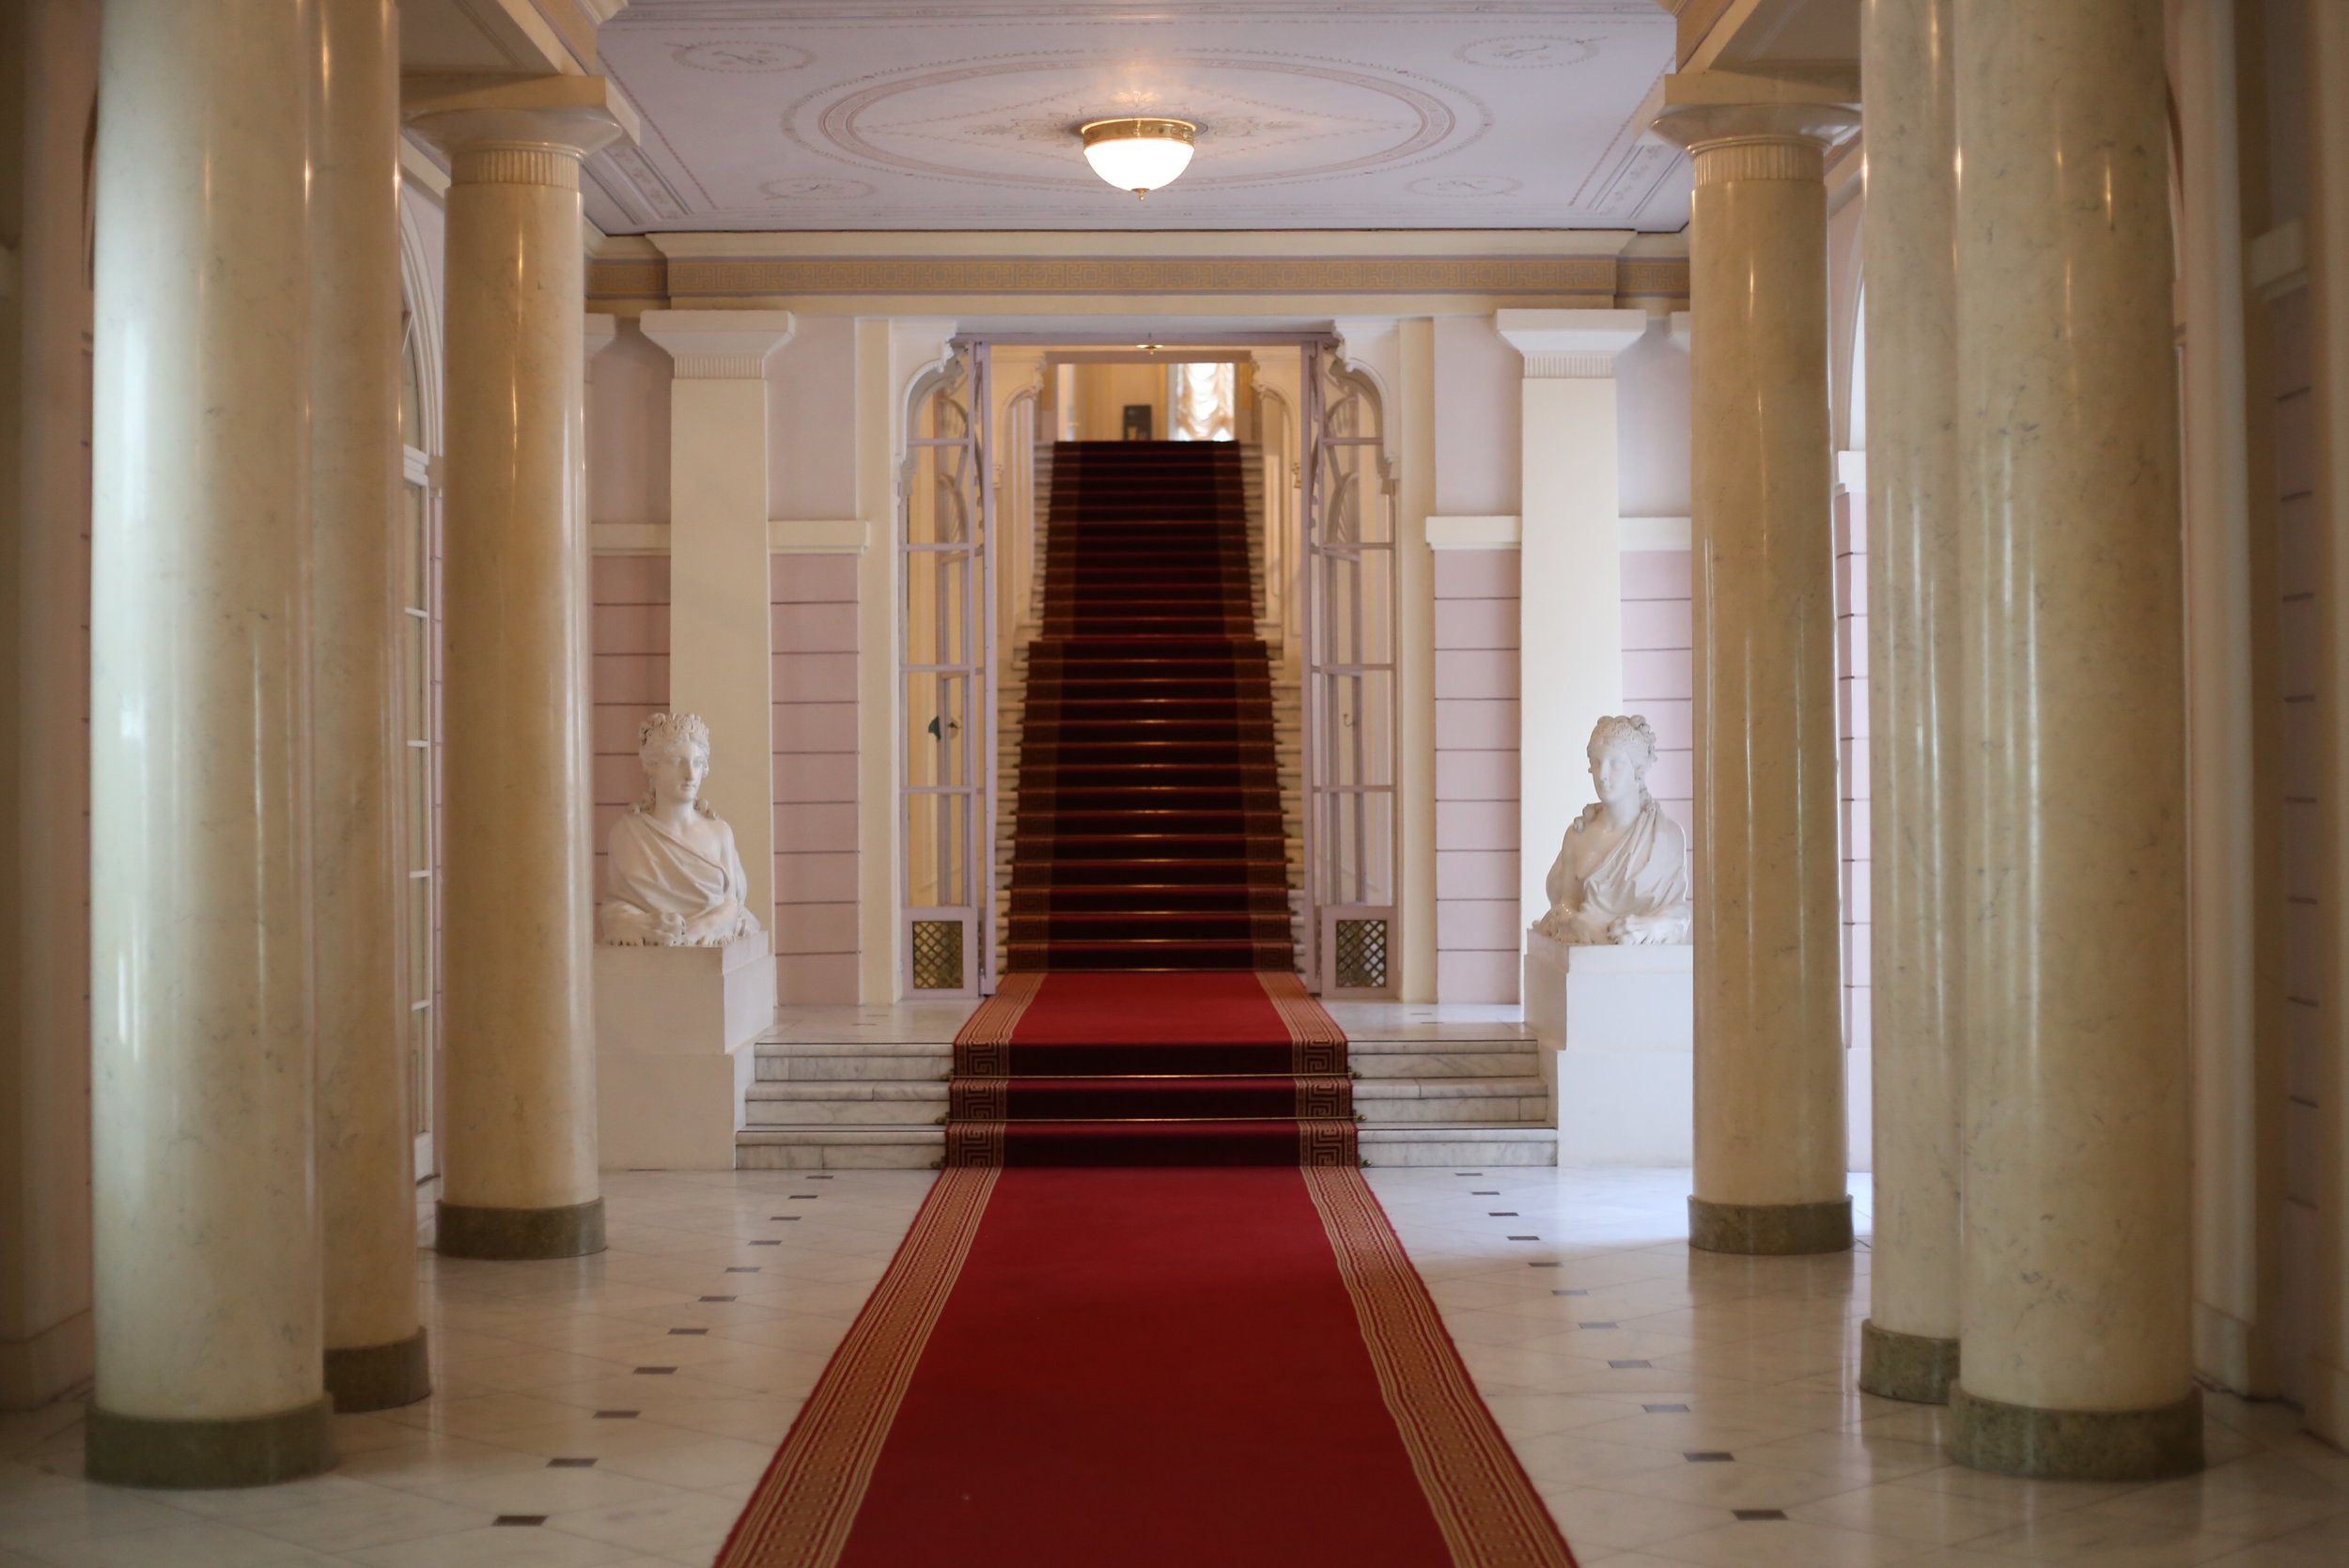 Red carpet in a grand old hallway of pink marble.